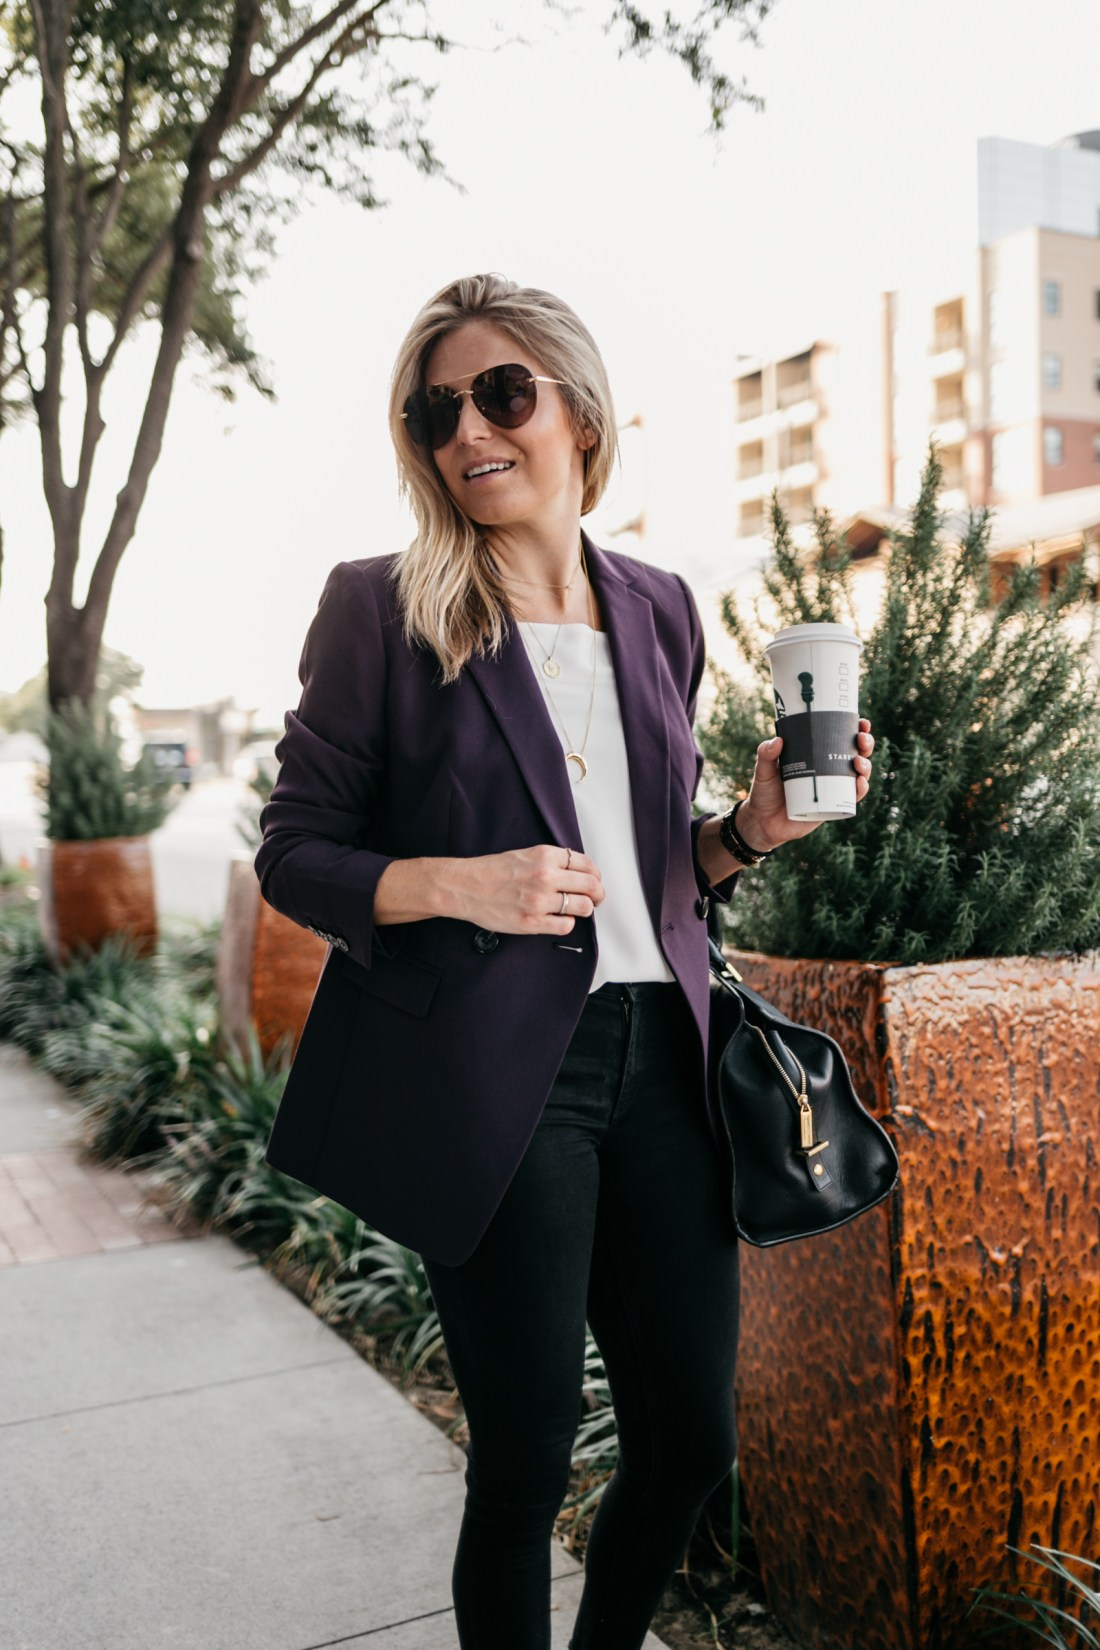 wear plum to work with this look of a girl wearing shades with a coffee cup in her hand